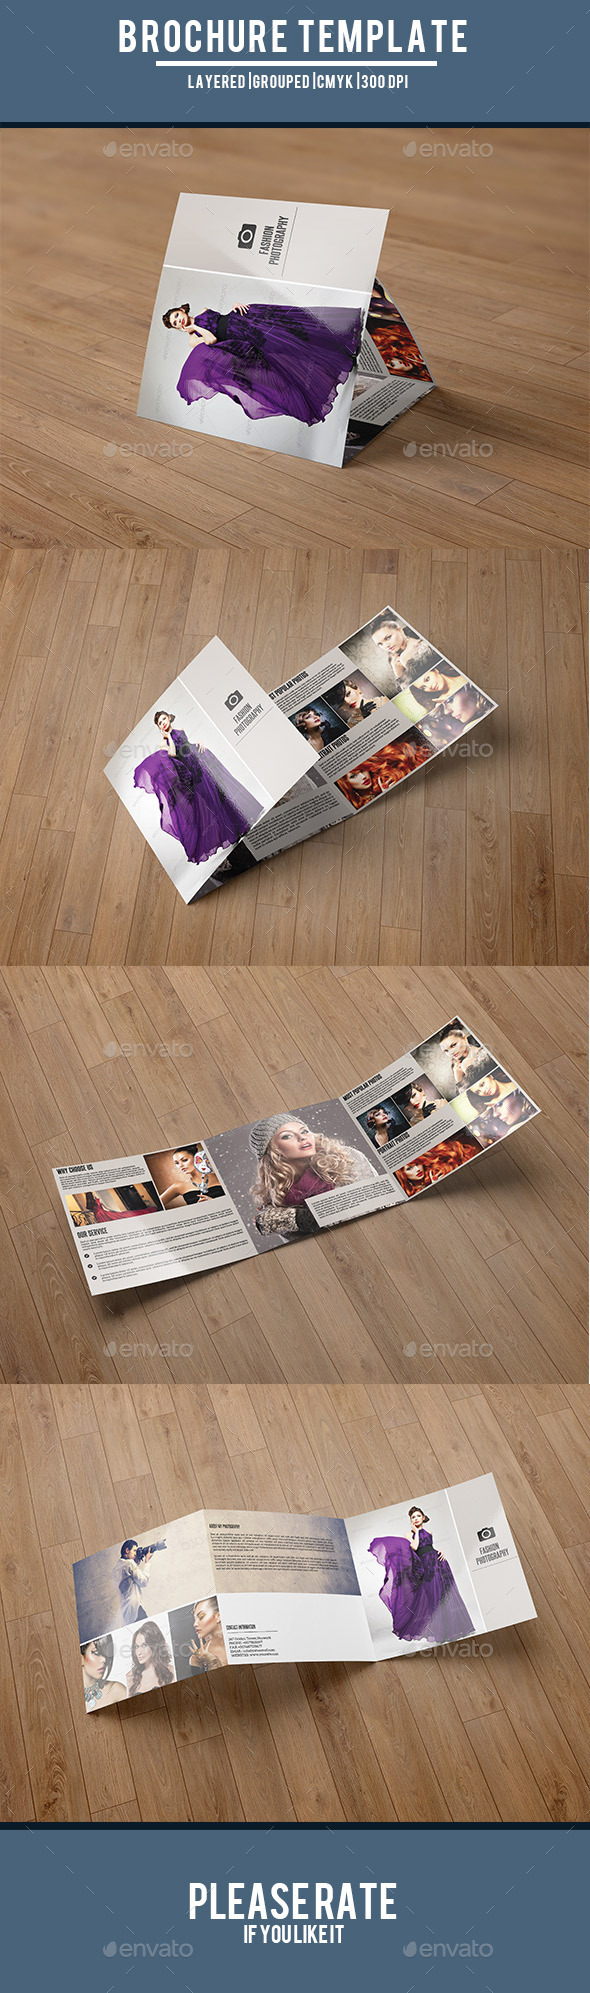 Square Trifold for Fashion Photography